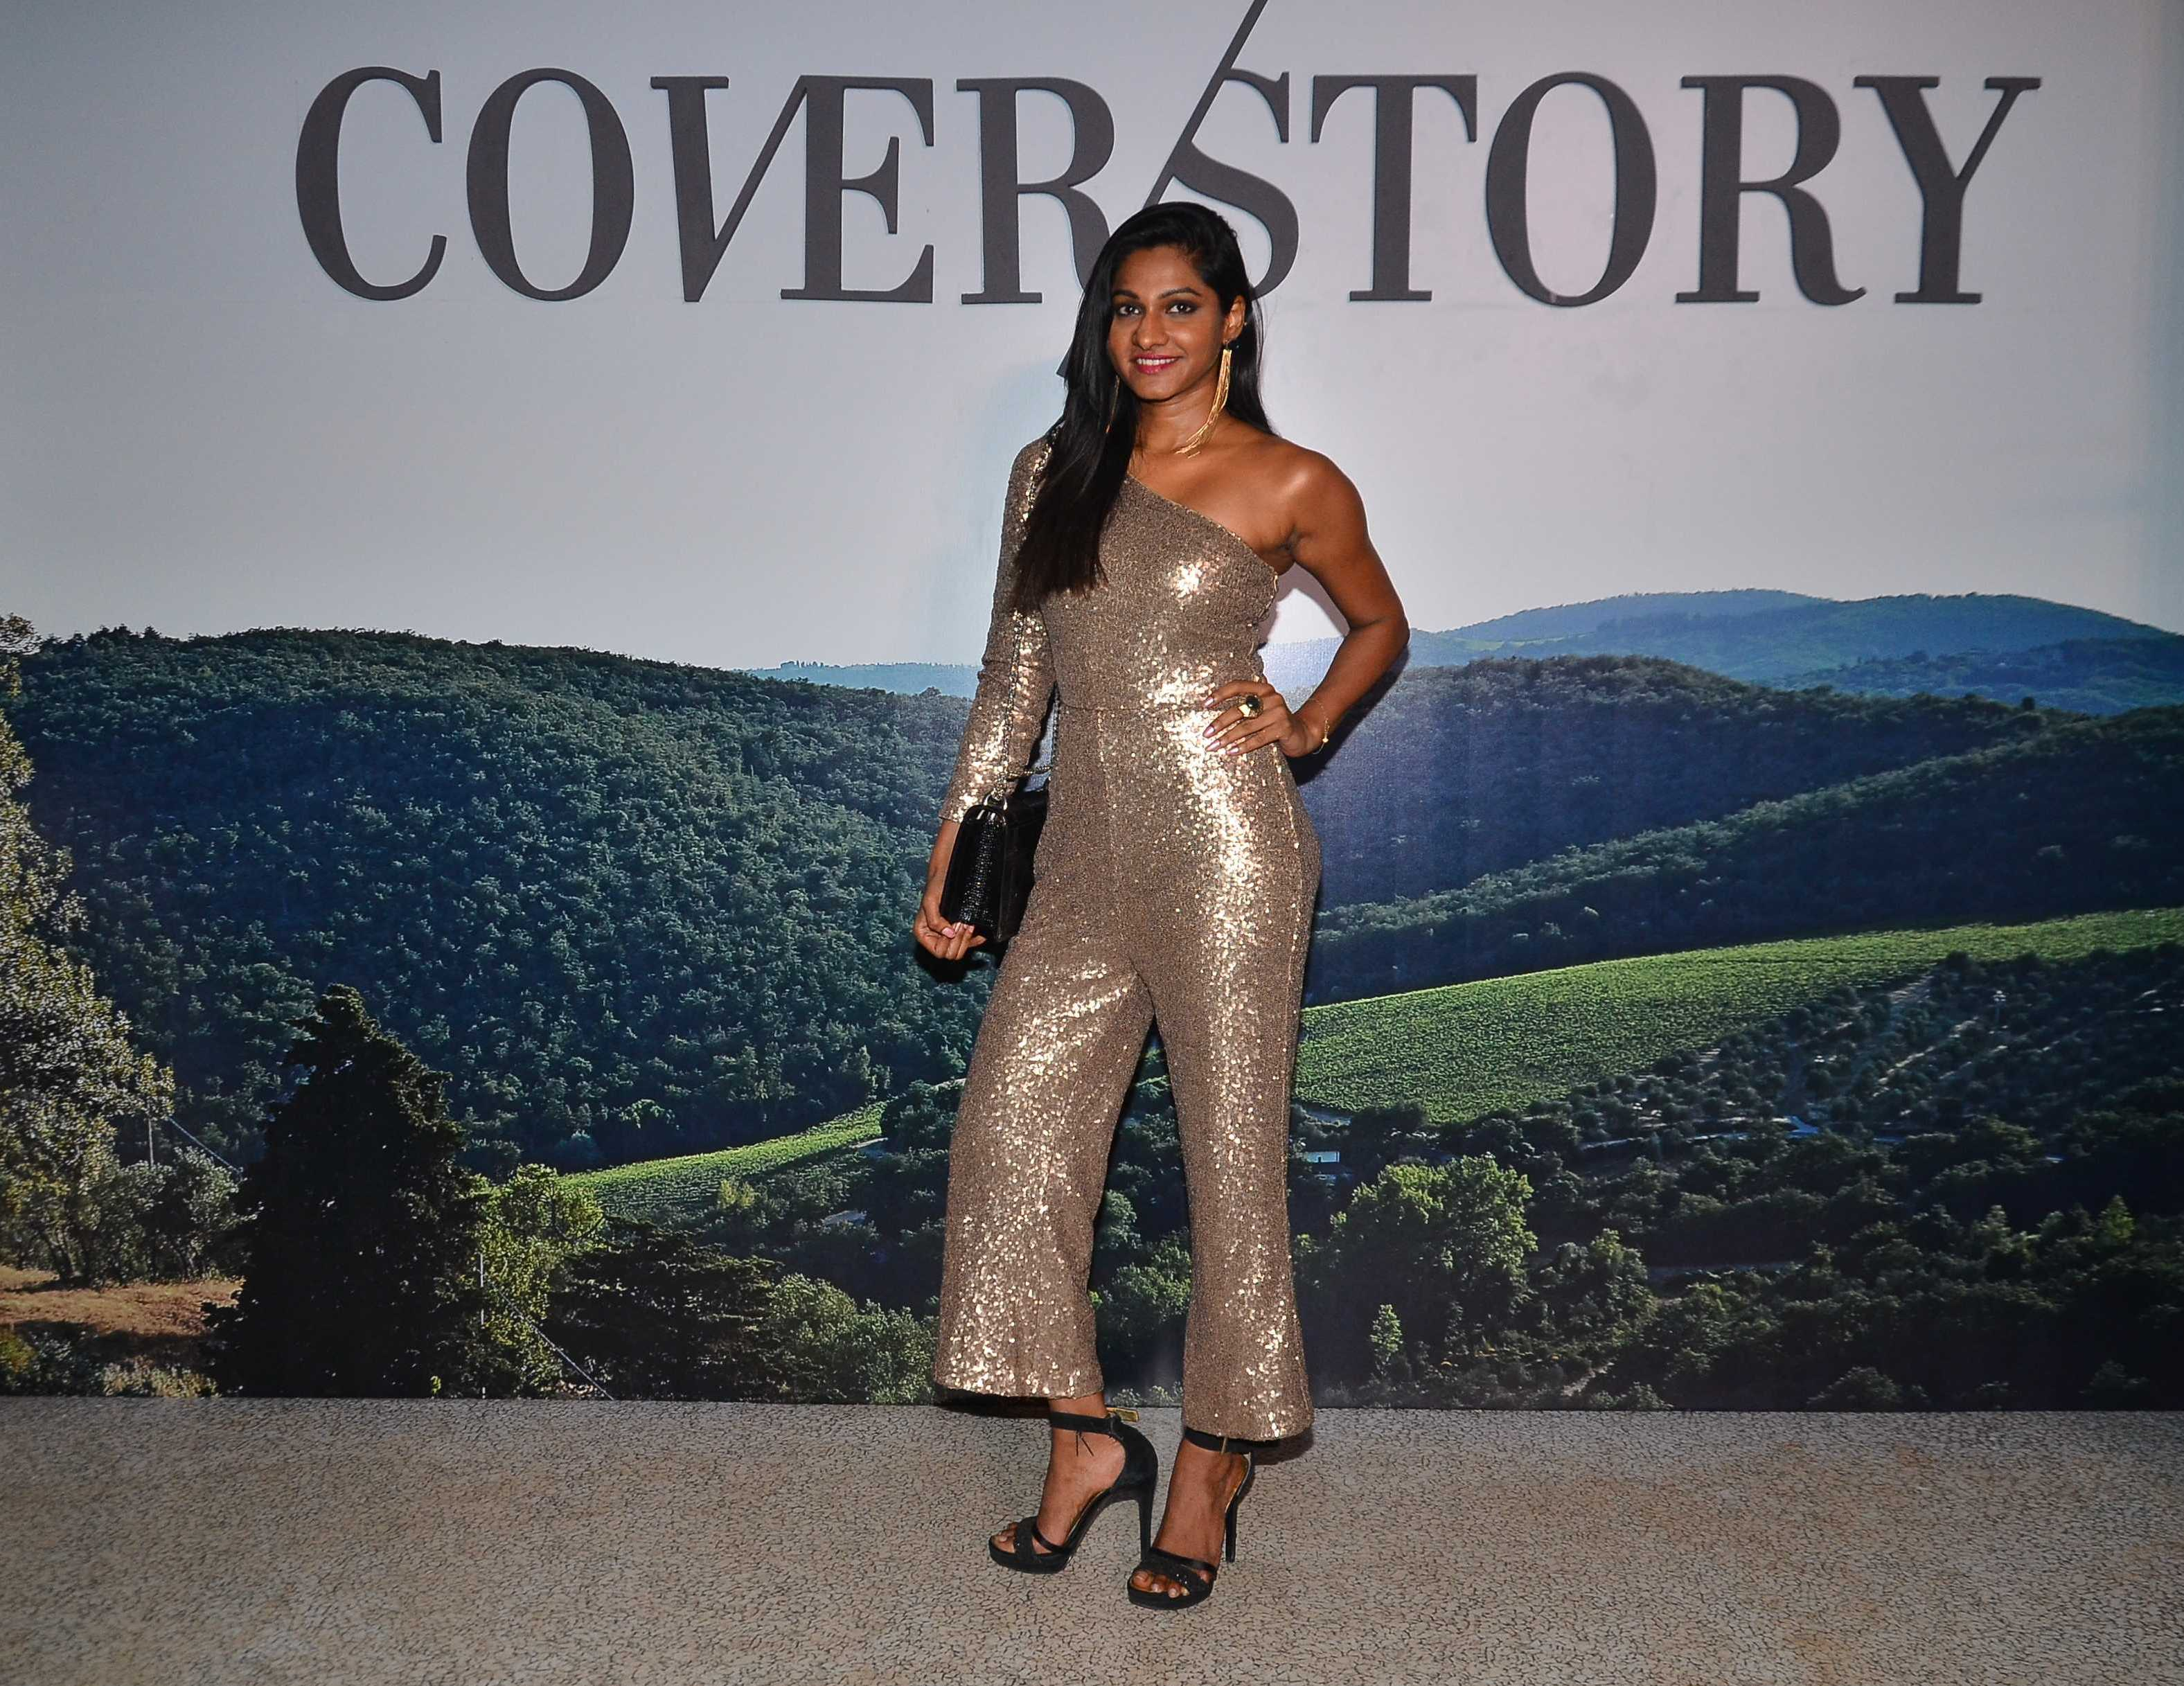 Celeb Stylist Esha Amin at Cover Story AW 17 Party